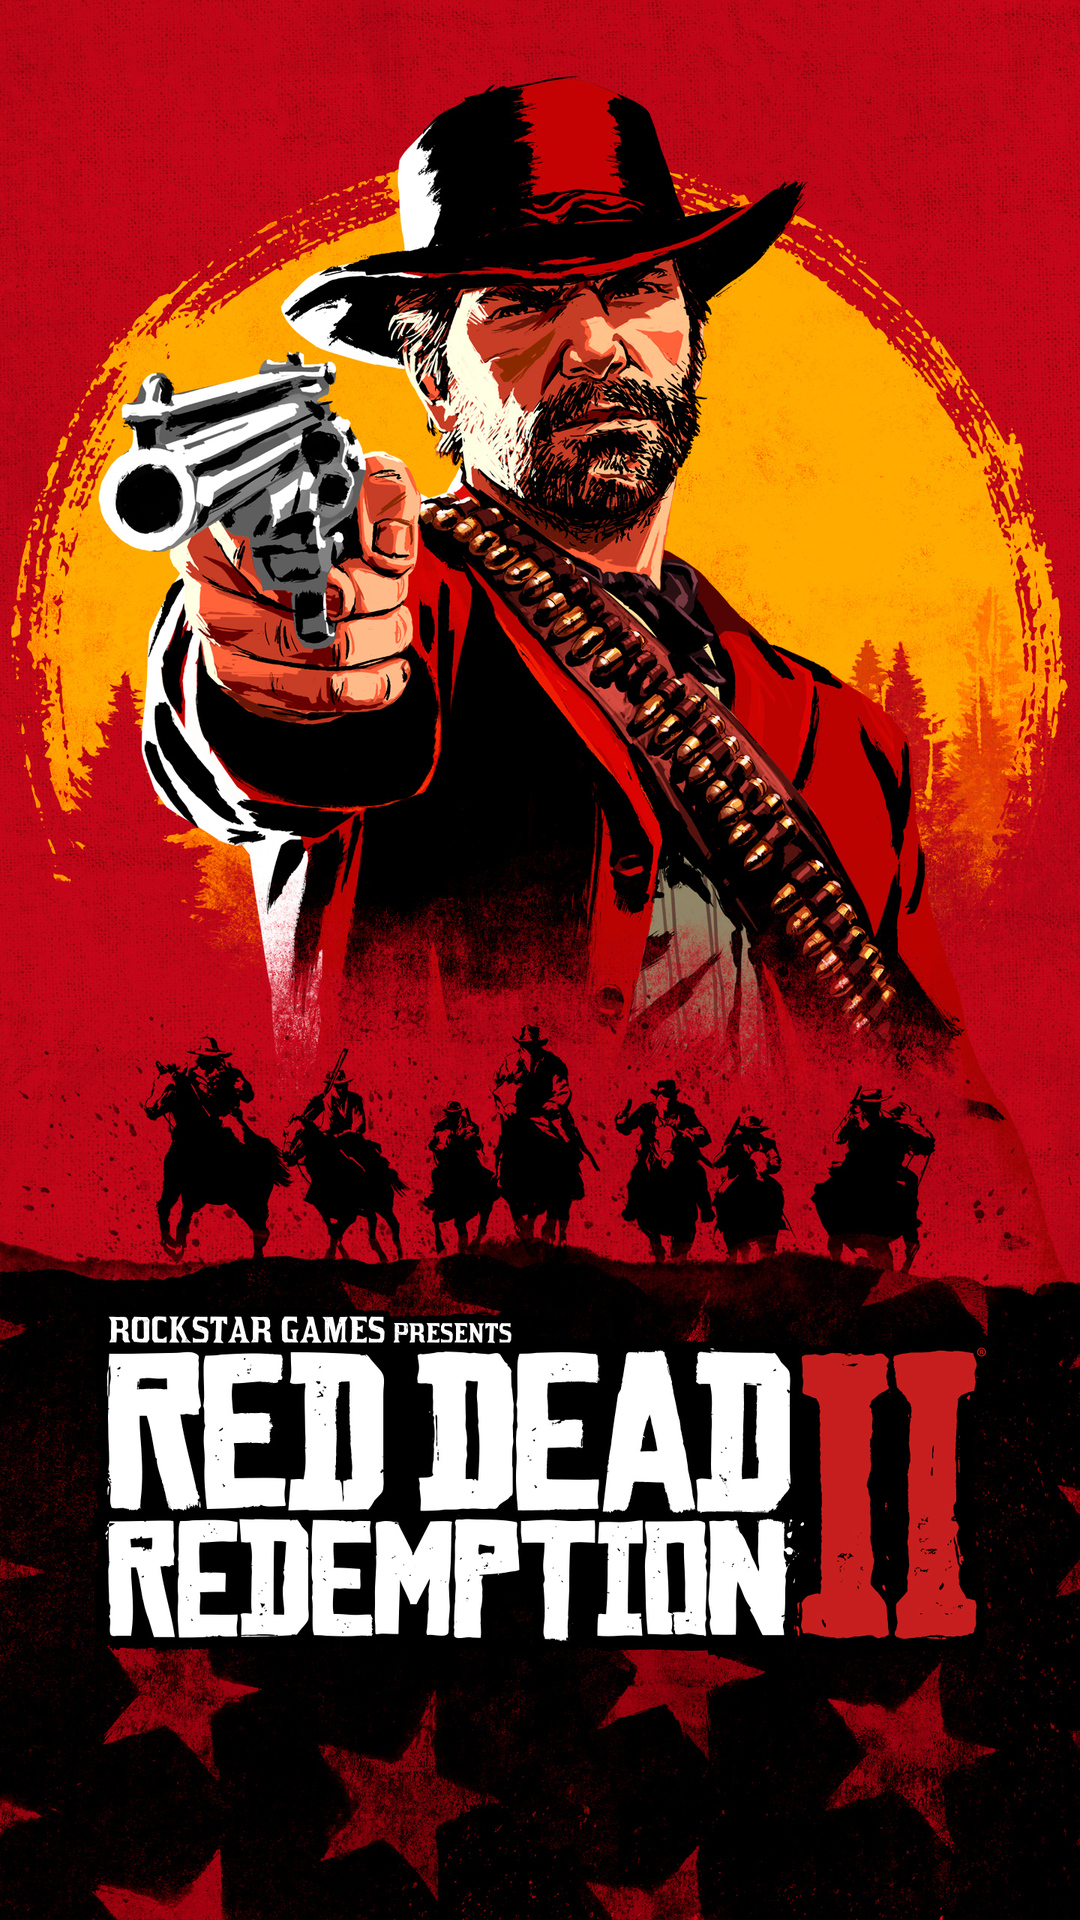 Red Dead Redemption 2 Htc Wallpaper 1080x1920 Resolution